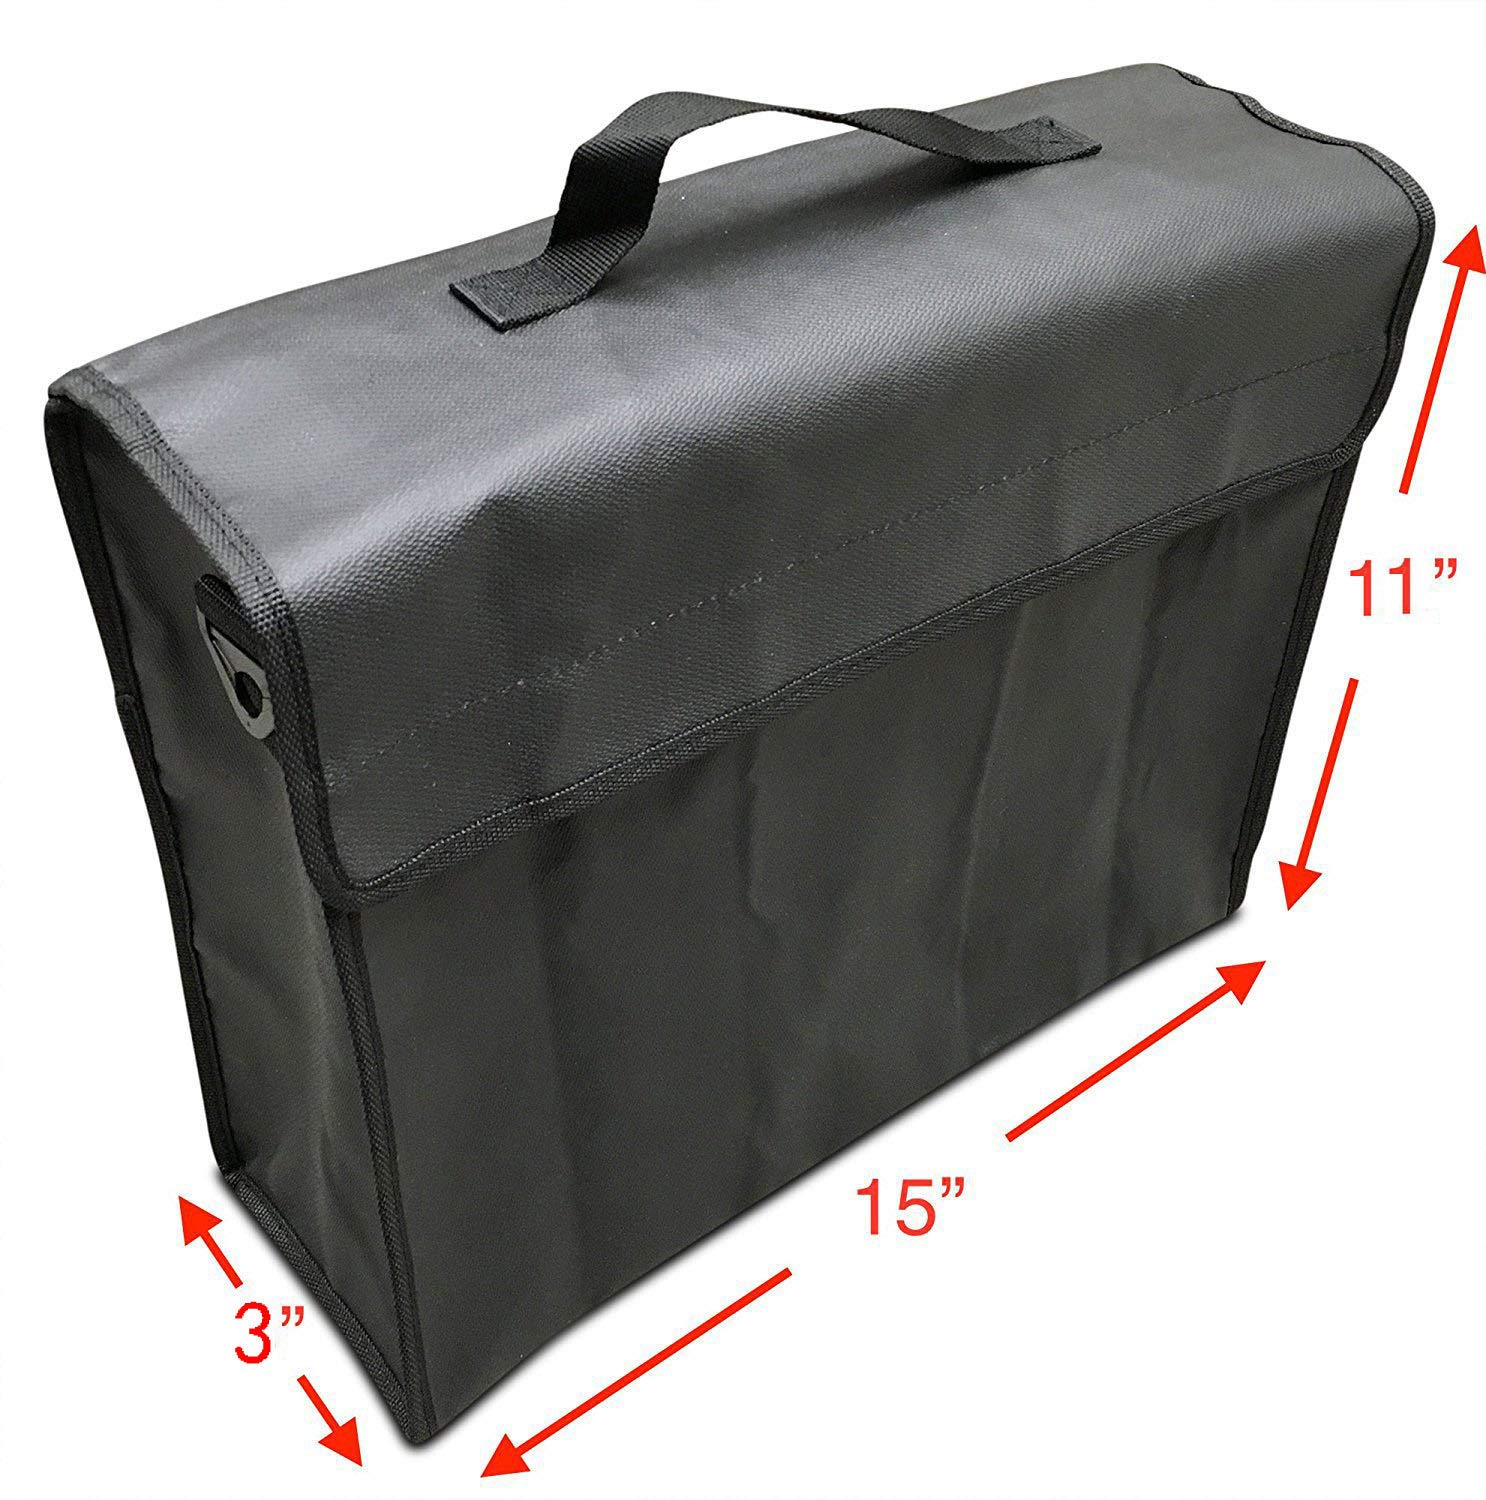 Non Itchy 15 x 11 x 3 Inches Strong Double Layer Heat Protection Large Fireproof Document Bags and Money Bag - File Box for Home Key XL Fire Safe Water Resistant Pouch to Protect Jewelry Cash